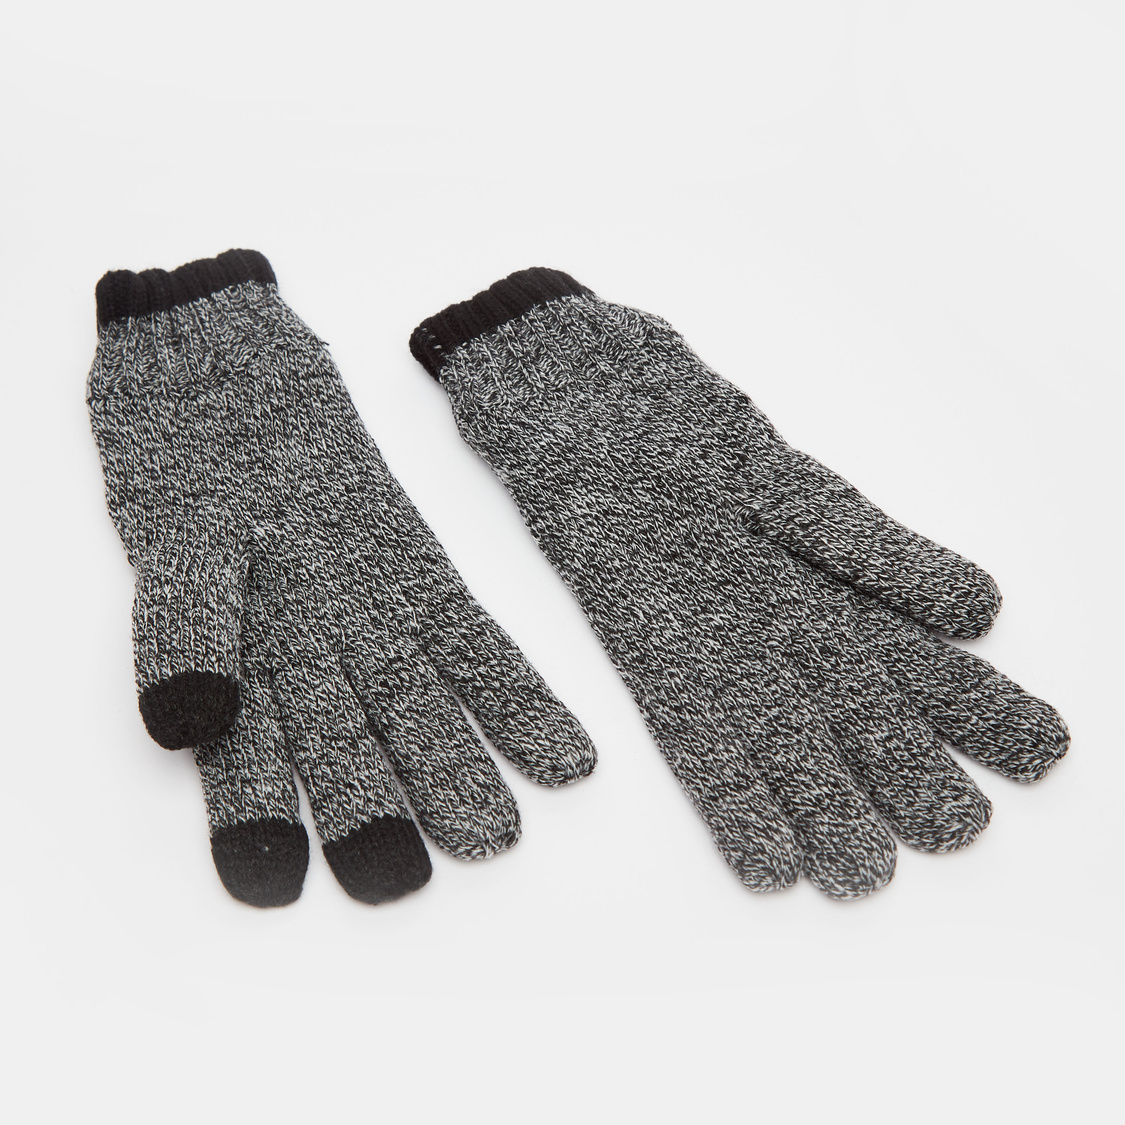 Textured Woolen Gloves